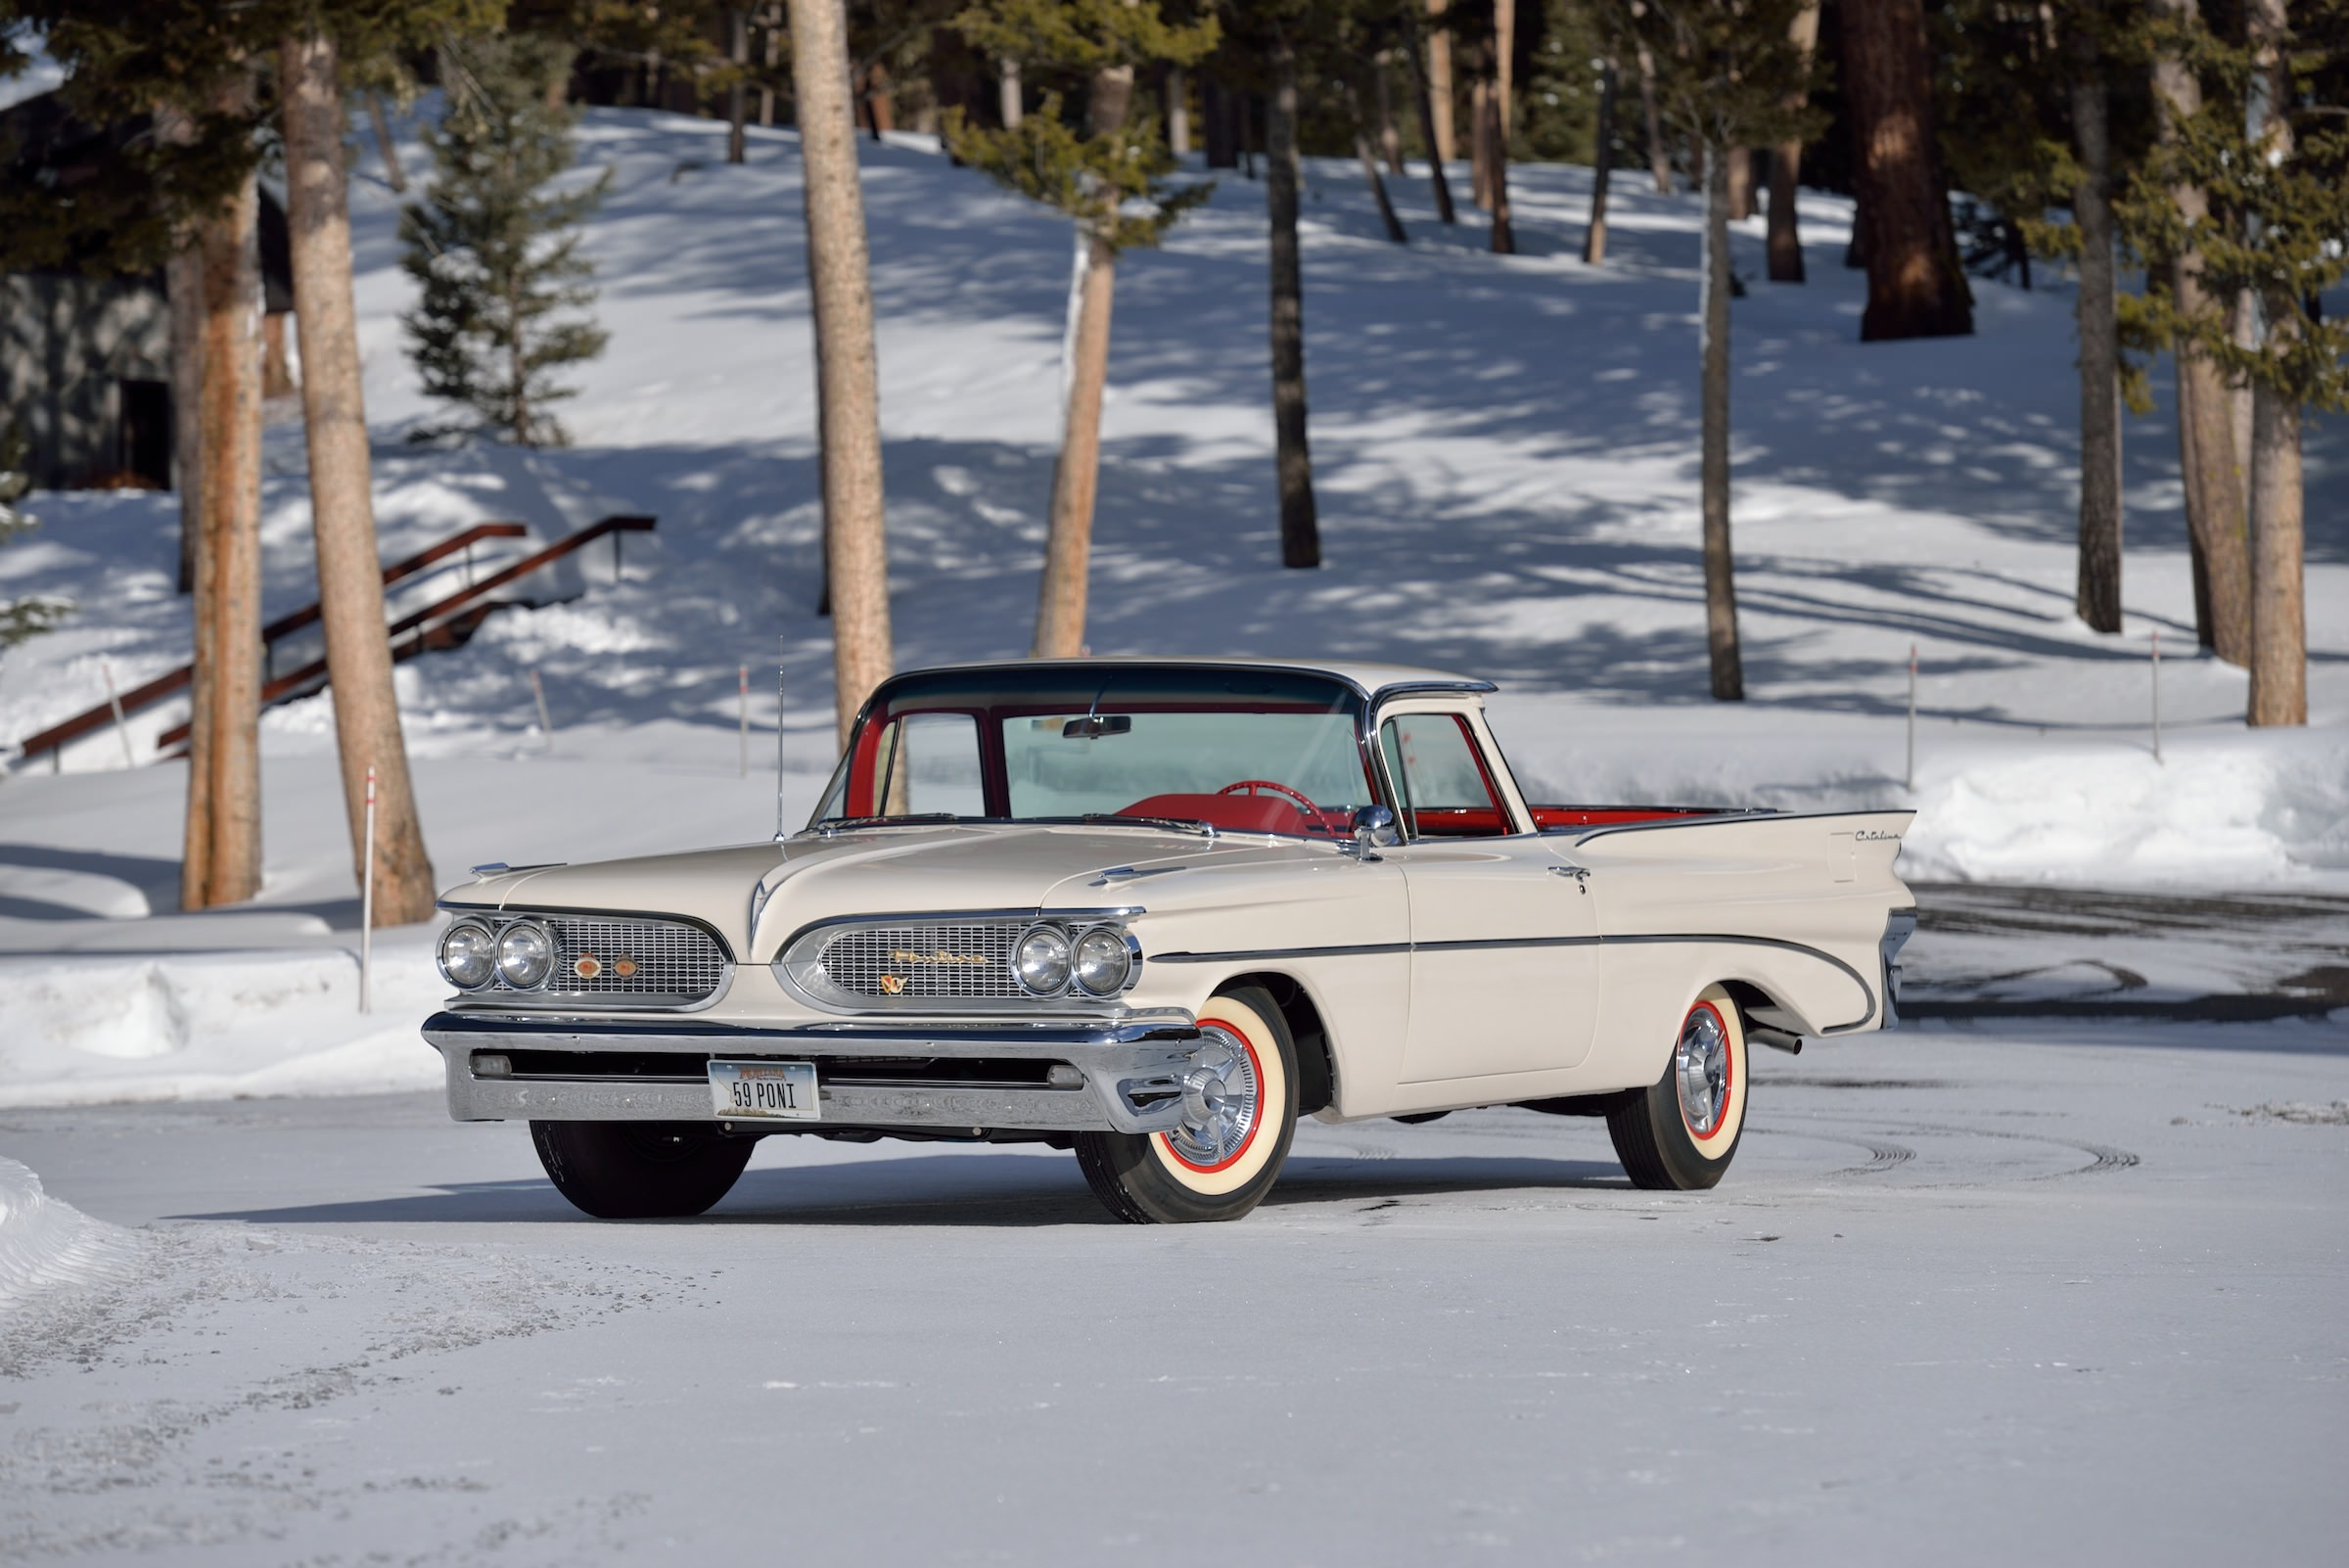 The Original 1959 Pontiac El Catalina Prototype - Only 1 Was